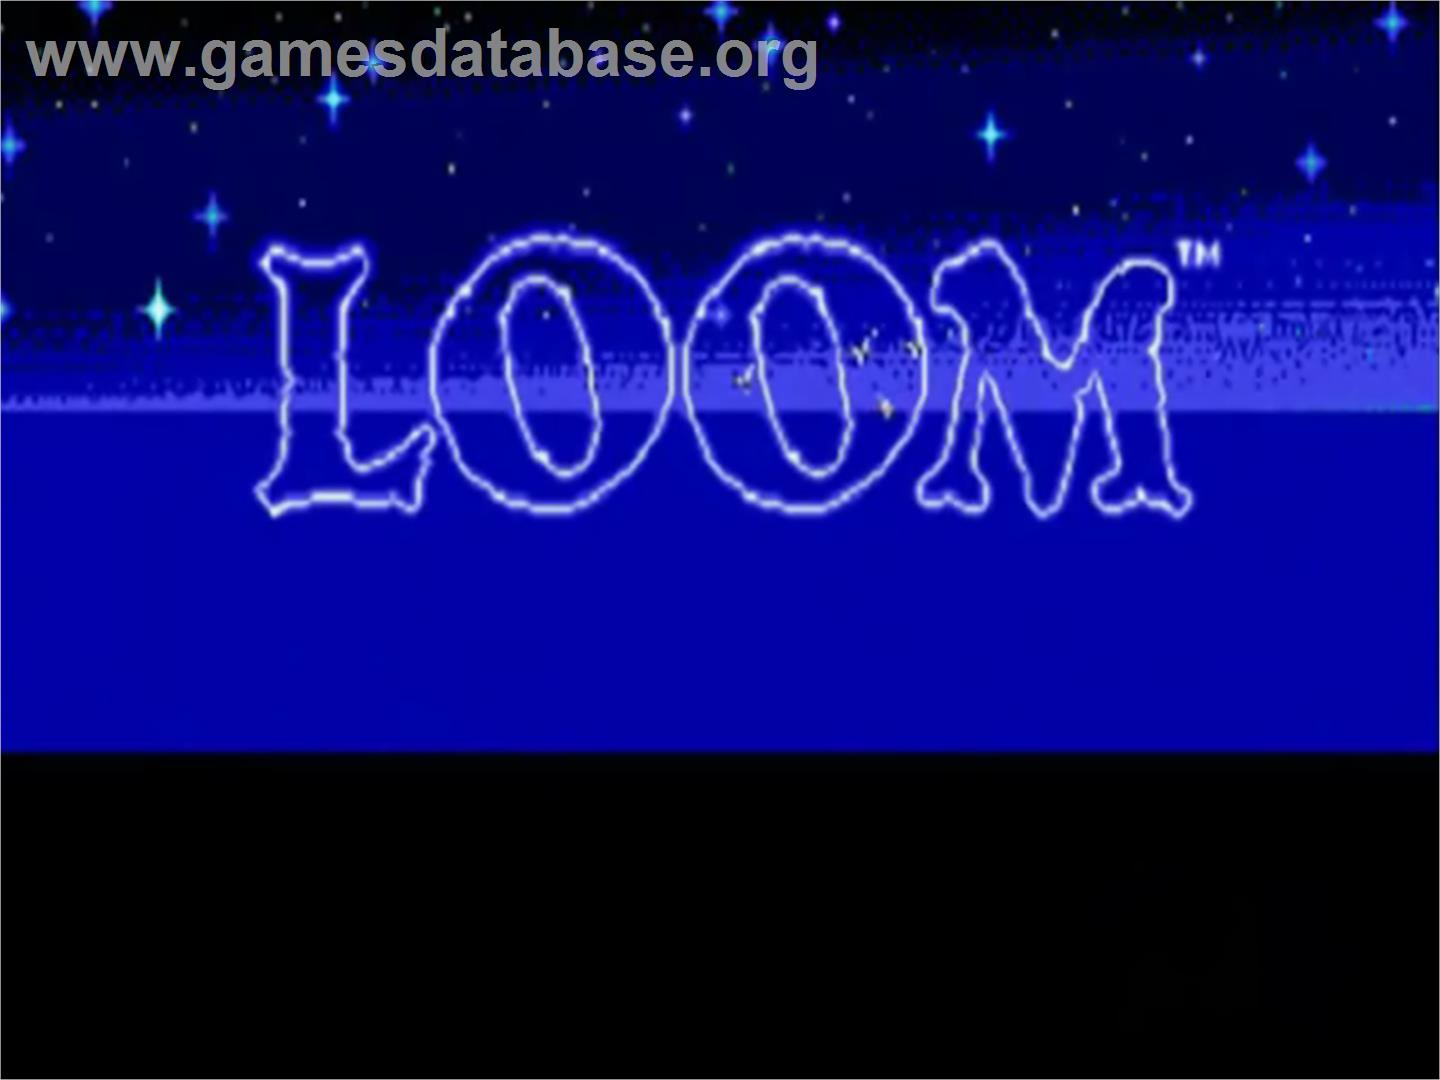 Loom - NEC TurboGrafx CD - Artwork - Title Screen